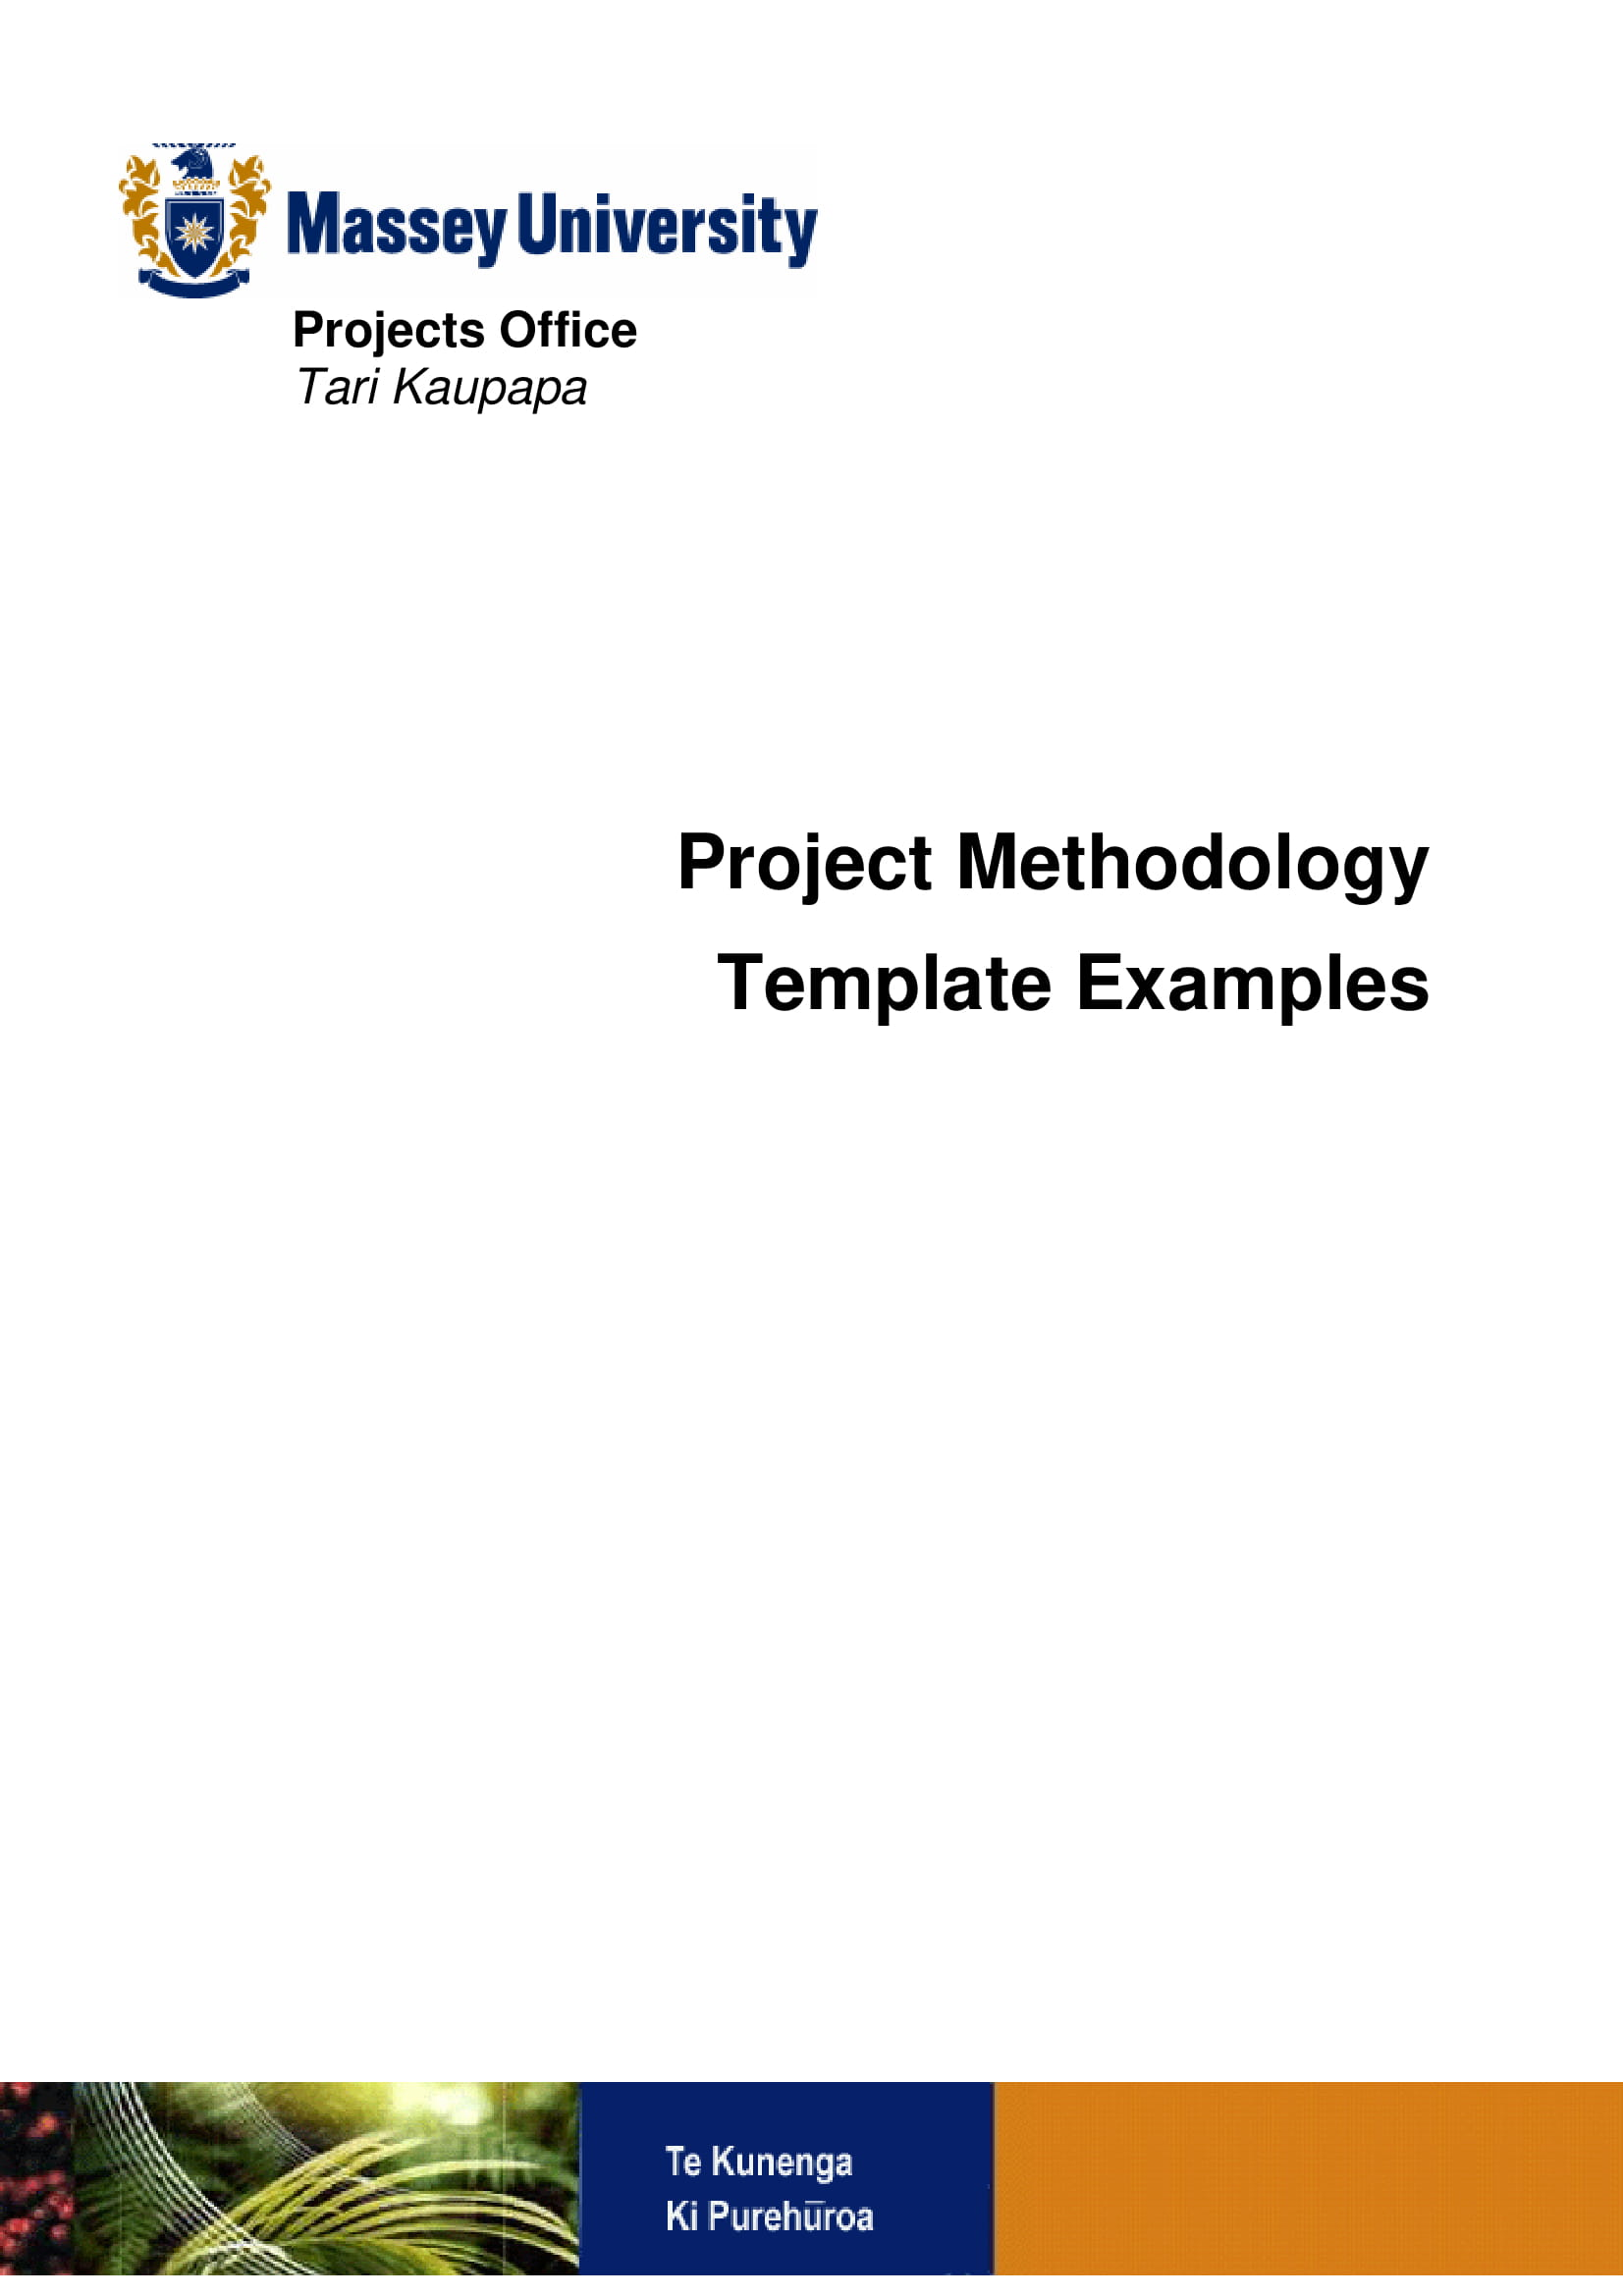 operations management plan methodology and template example 001